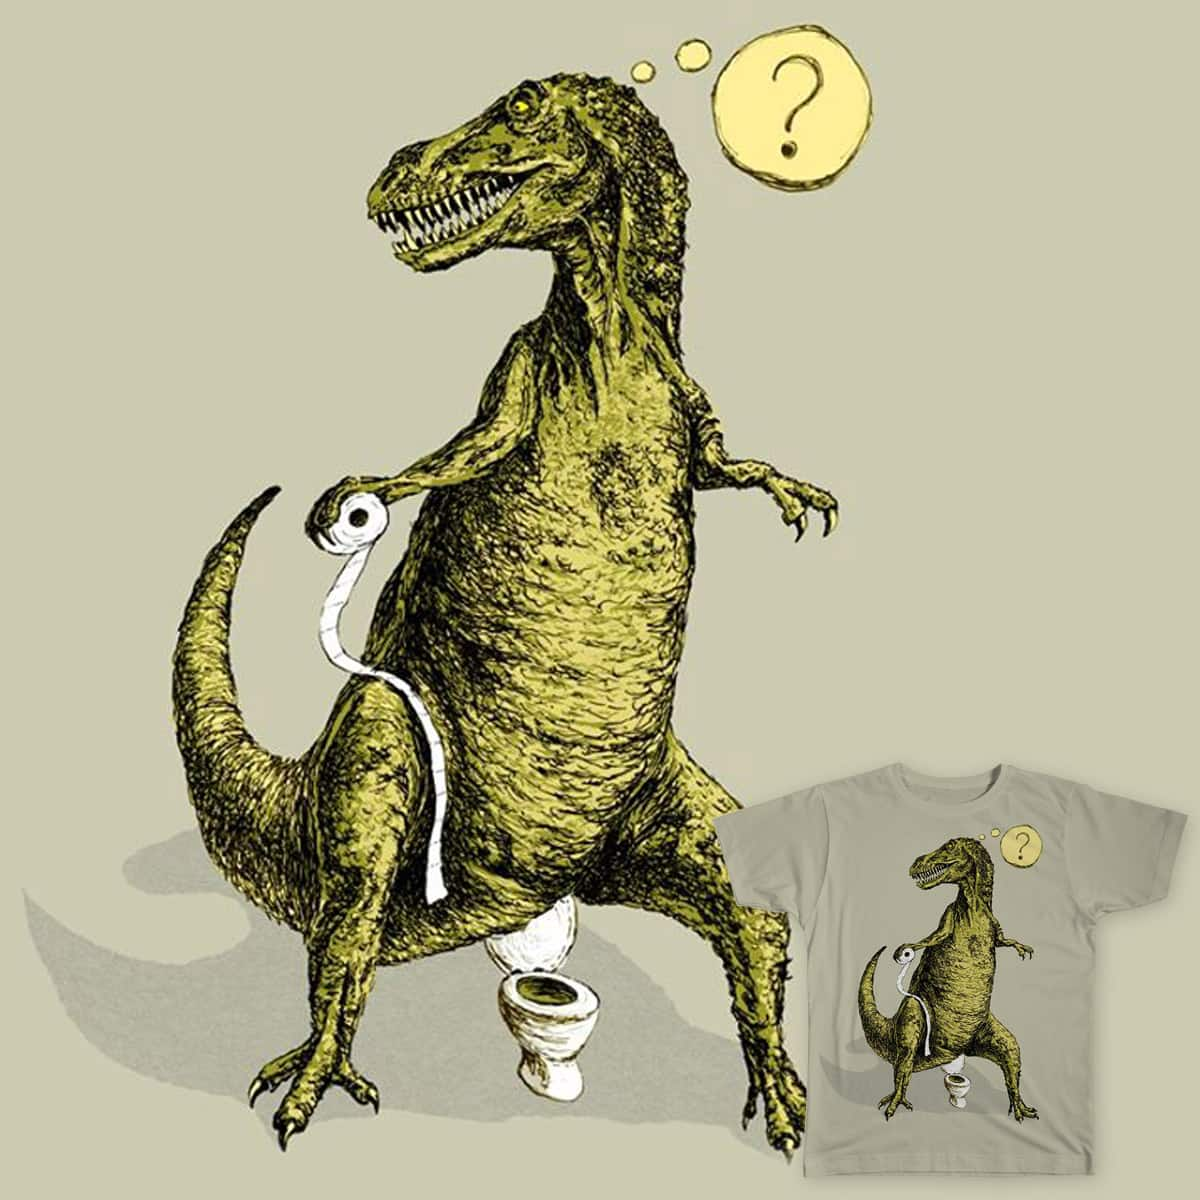 T-Rex doesn't wipe its ass by Leandro Lima on Threadless